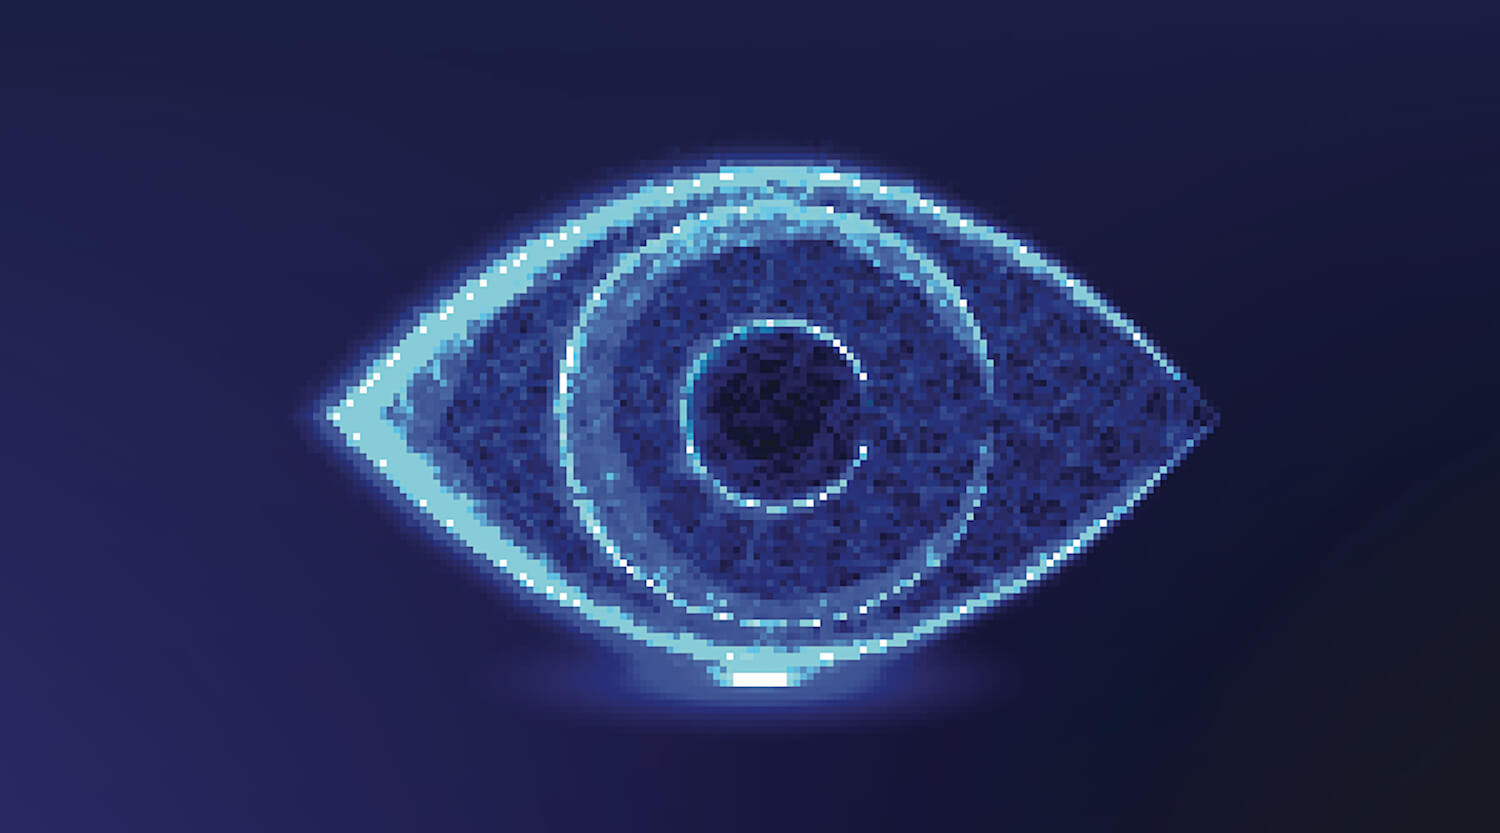 Image of an eye drawn on dark background.